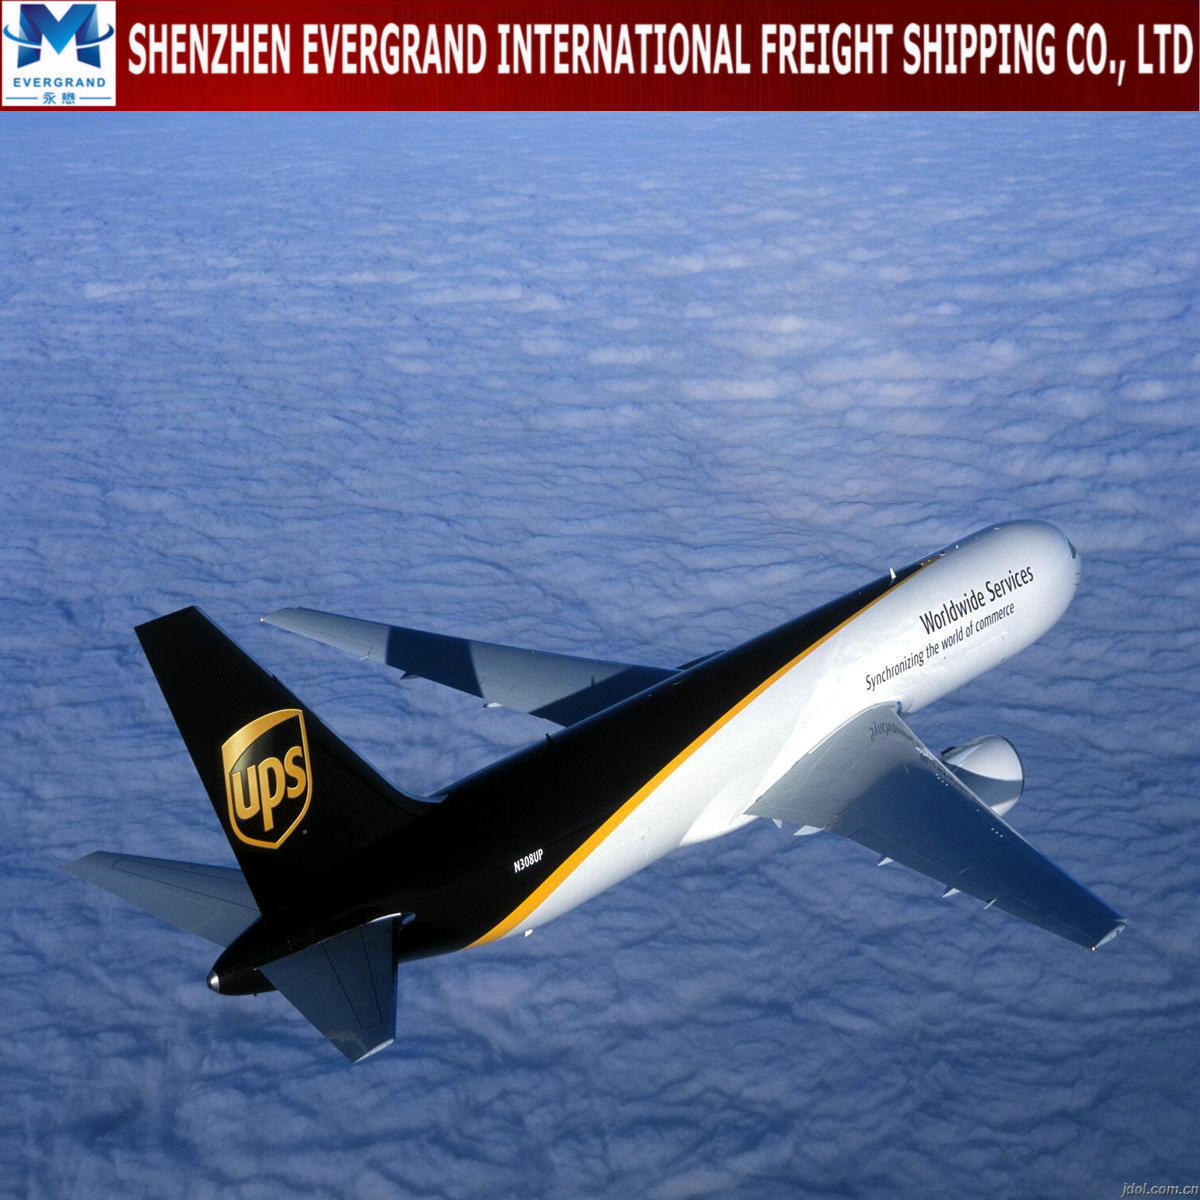 Discounted Express Air Freight Shipping Agent